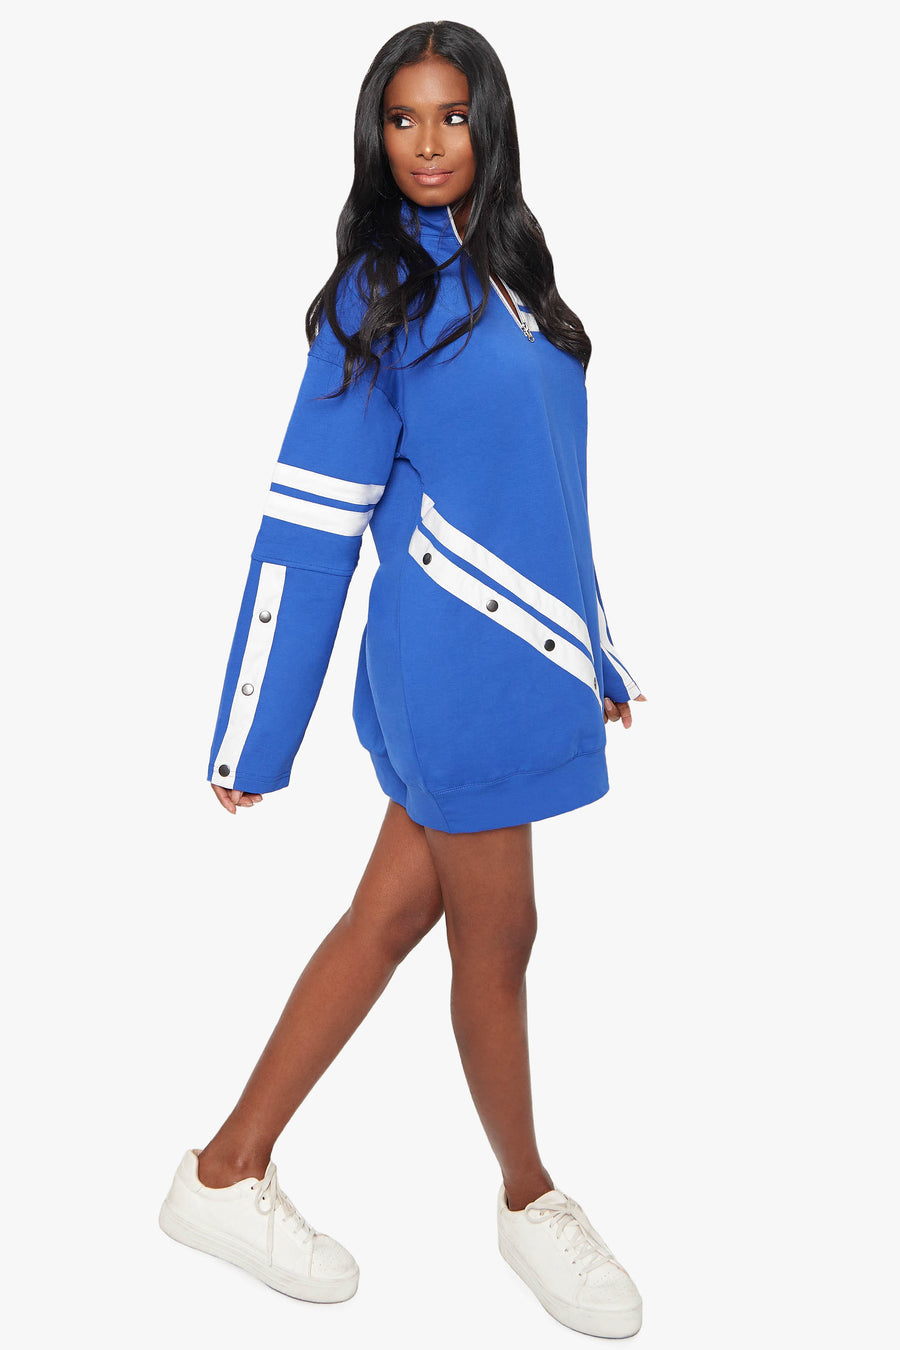 Maybe Later Sweatshirt Dress